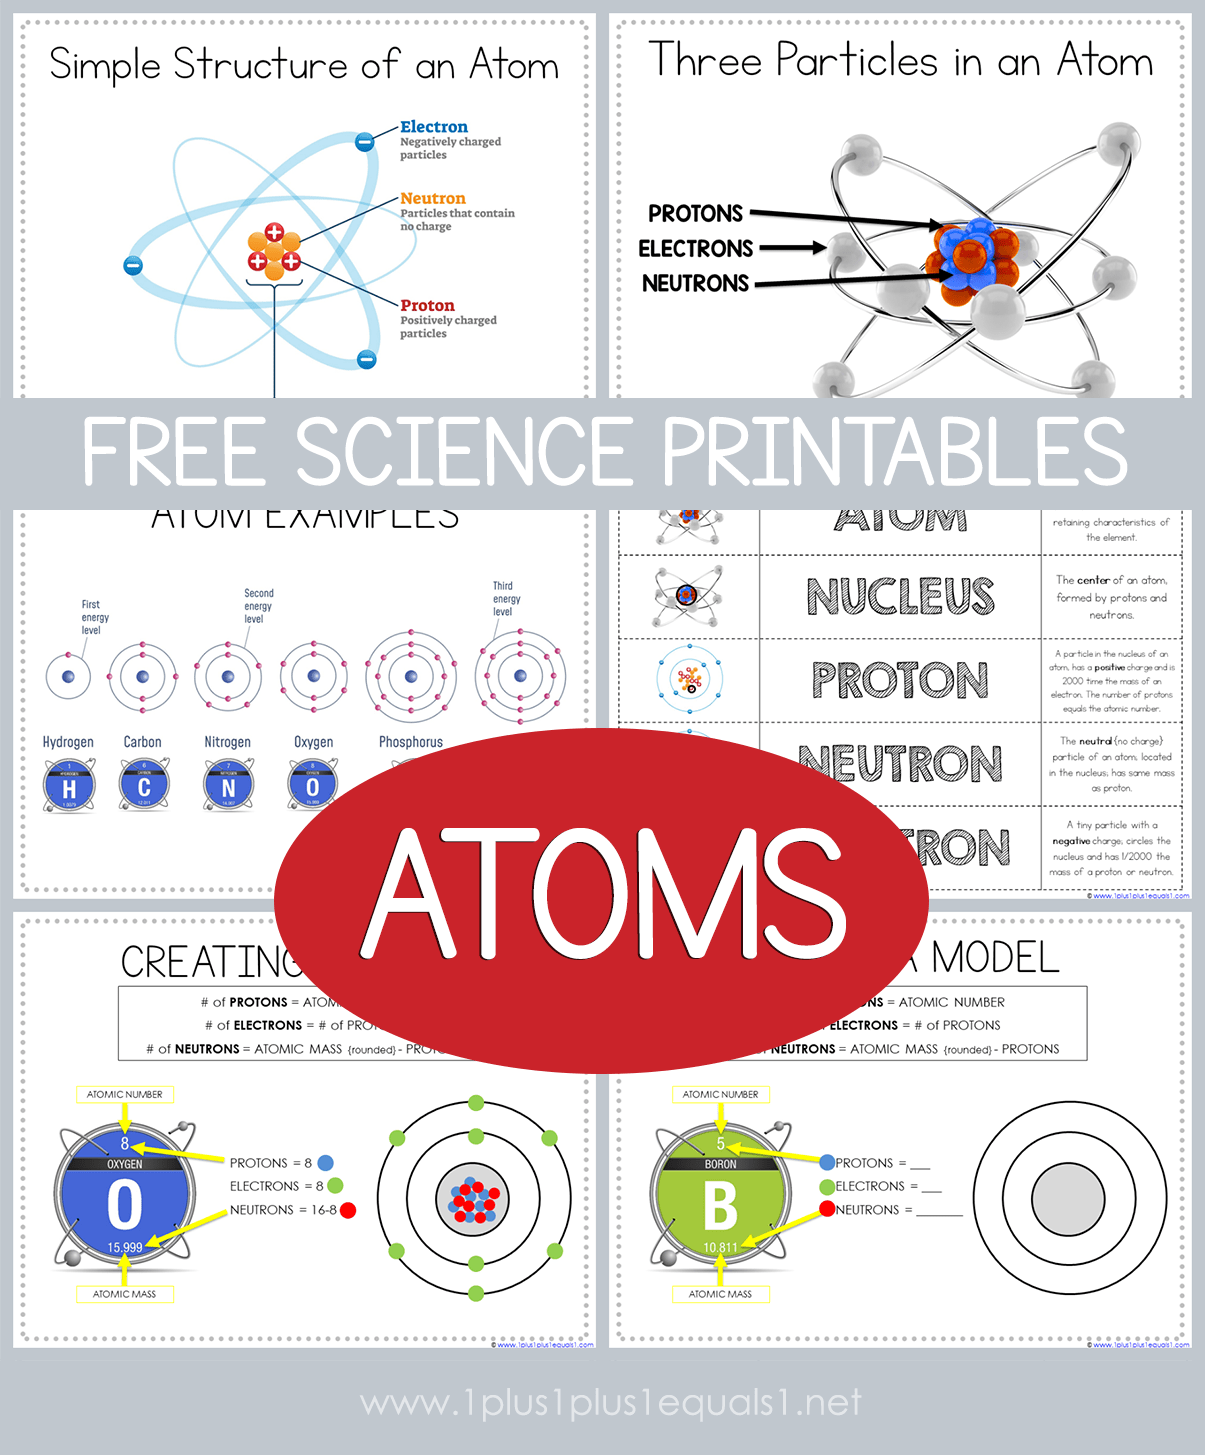 hight resolution of Free Science Printables ~ Atoms - 1+1+1\u003d1